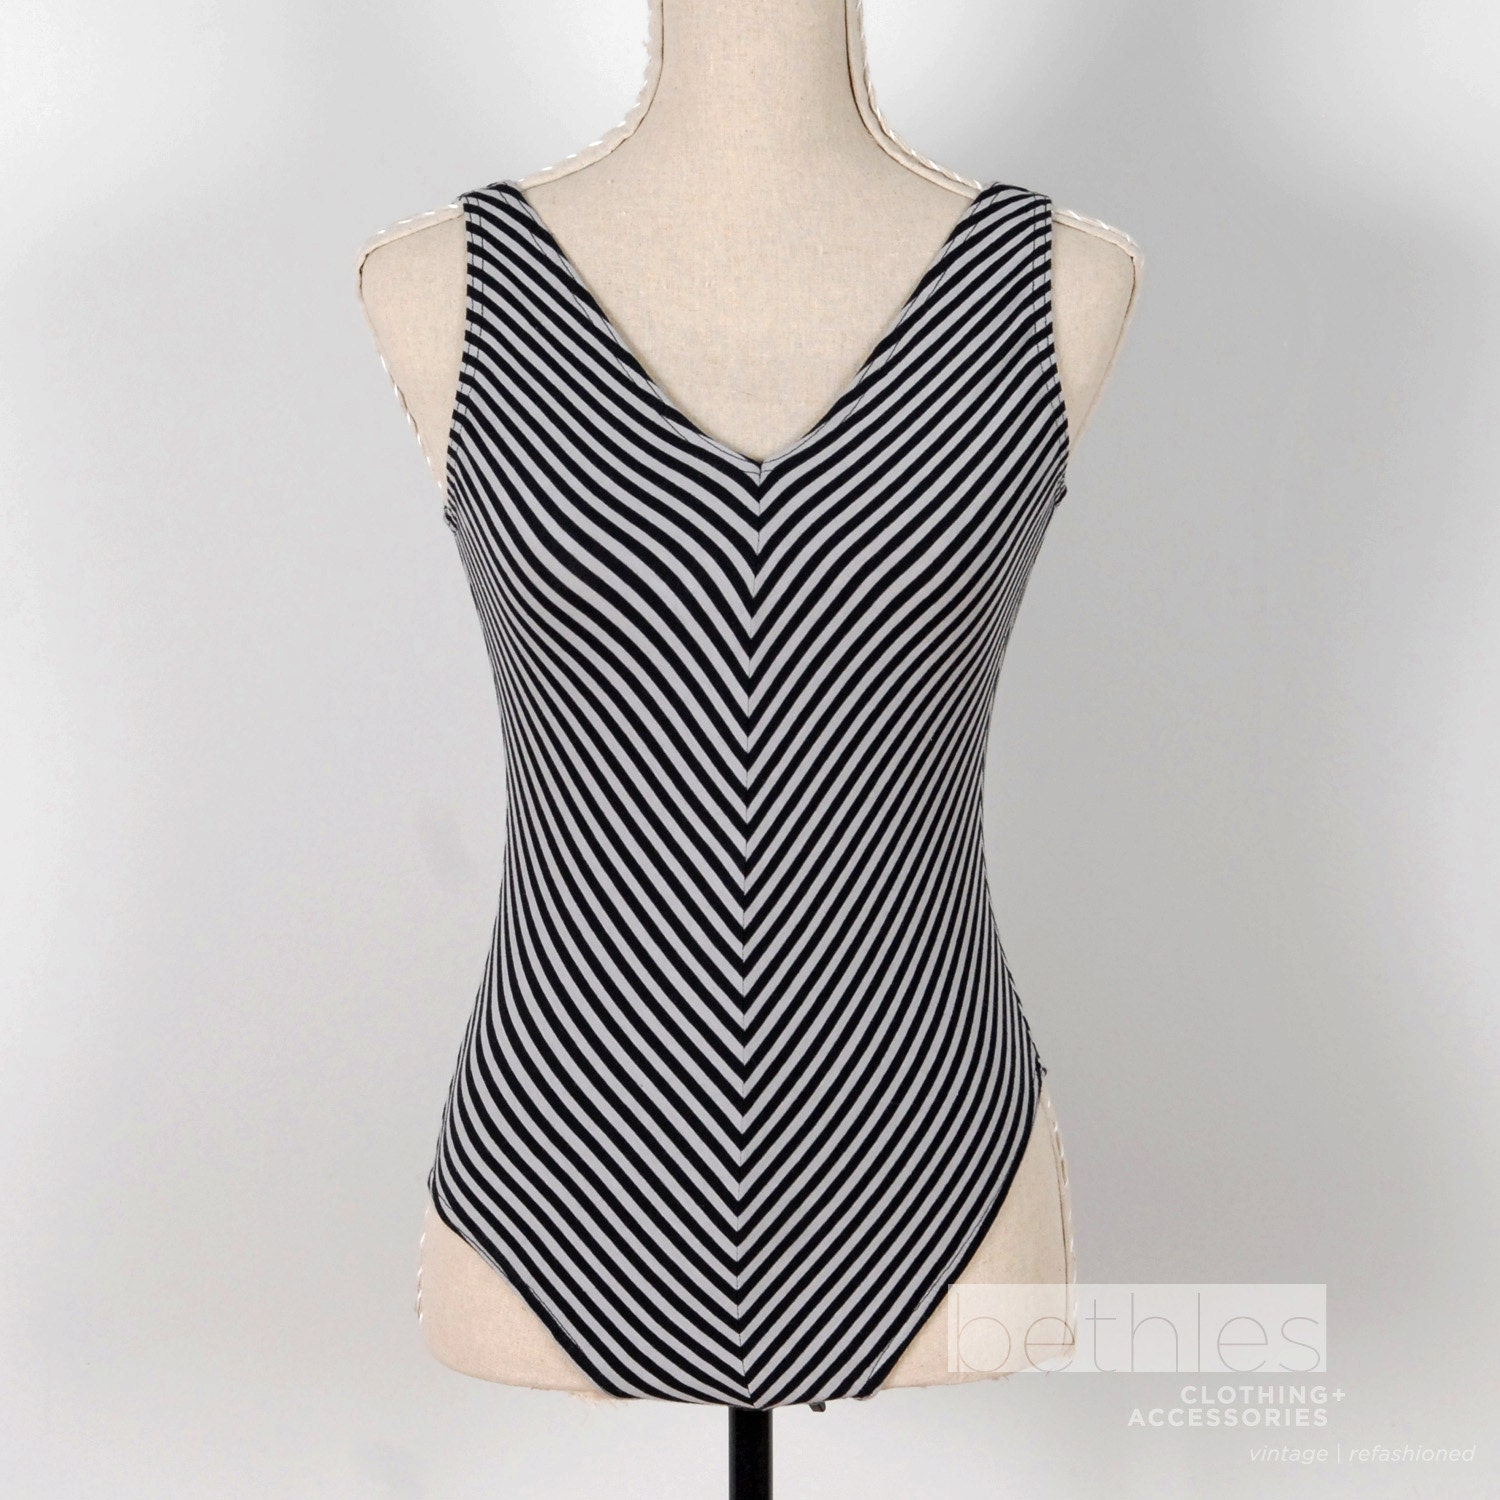 Grey White Stripes Leotard One Piece Sleeveless Vintage 80s Bodylines Medium - Bethlesvintage